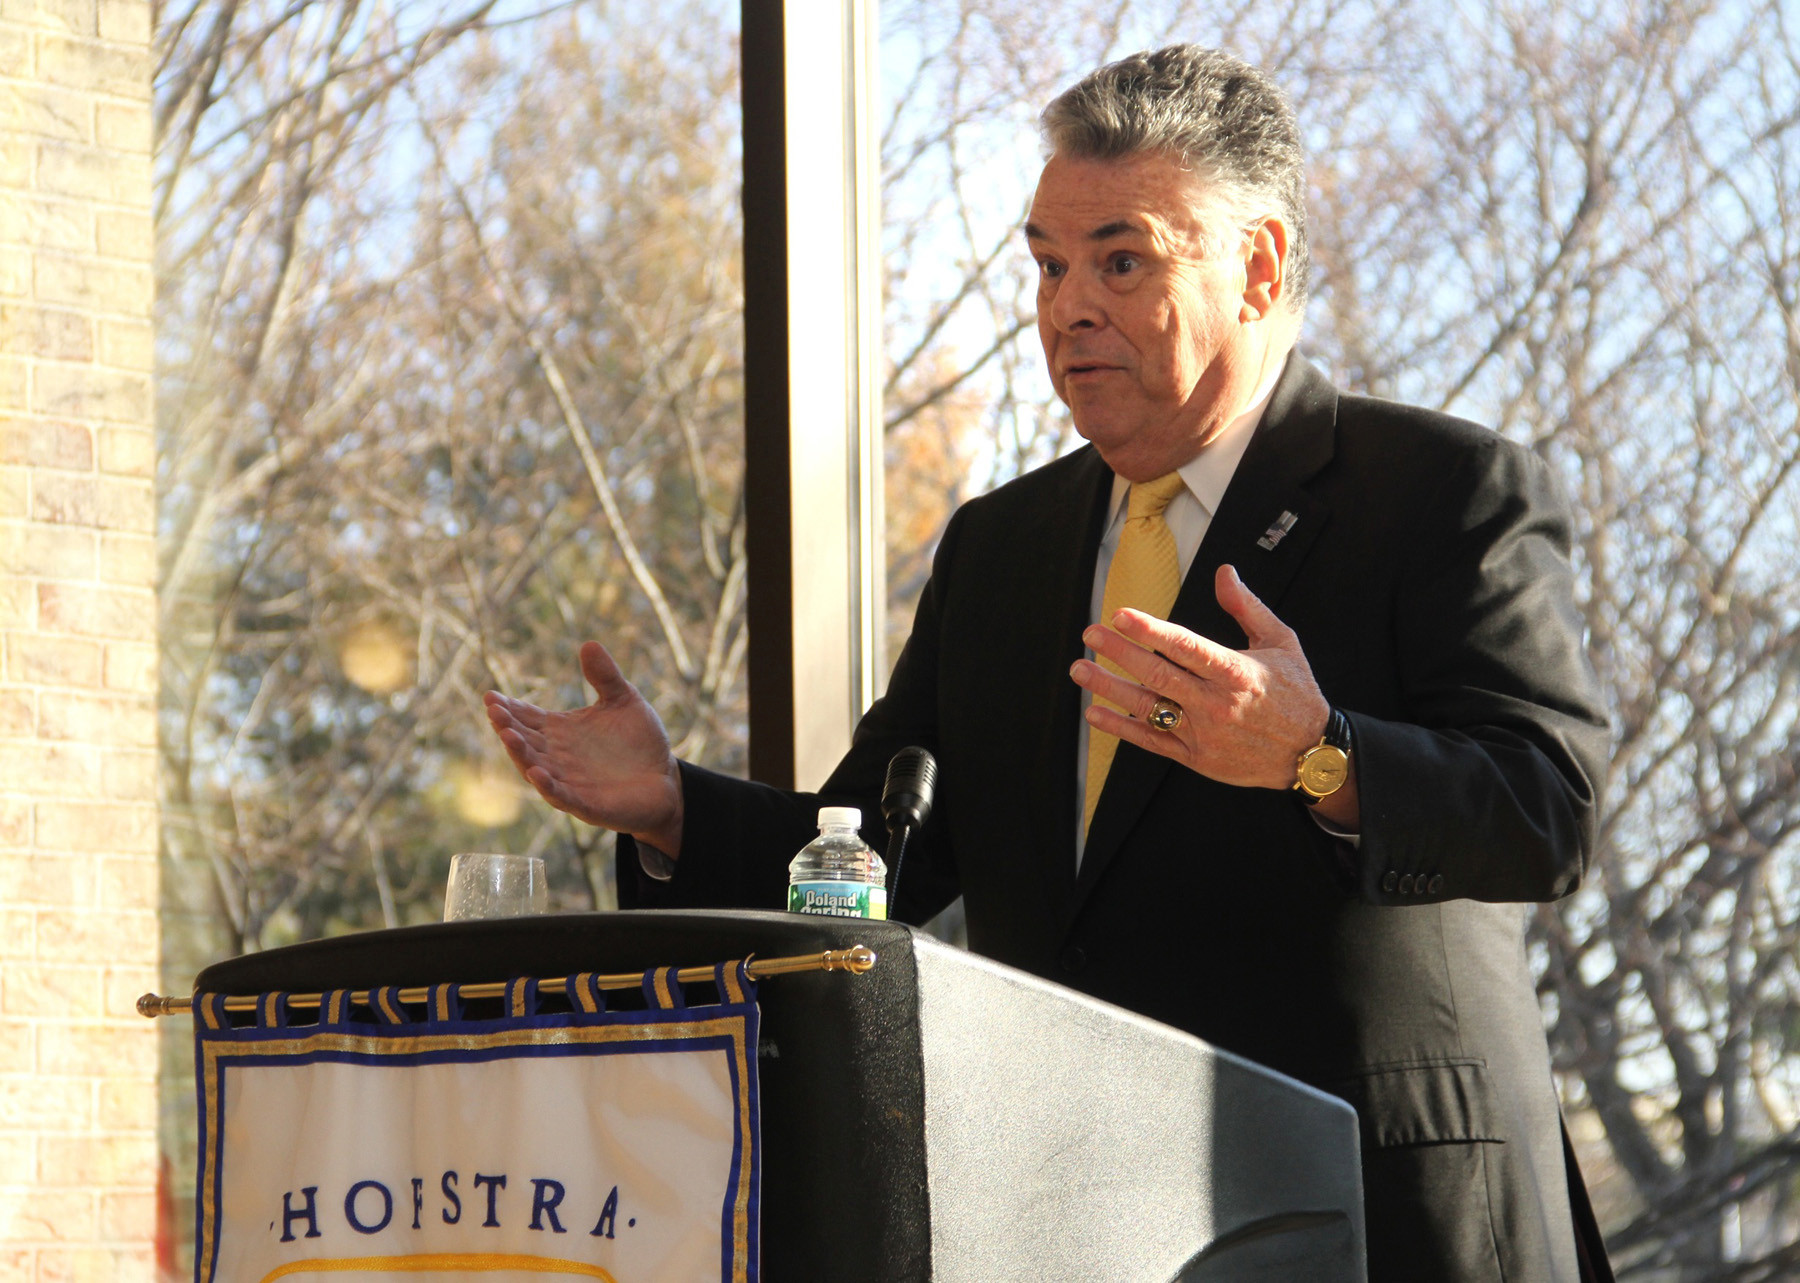 Congressman  Peter King, the keynote speaker at Hofstra University, told the audience that the 11-week delay in Congress set the hurricane reimbursement process back 